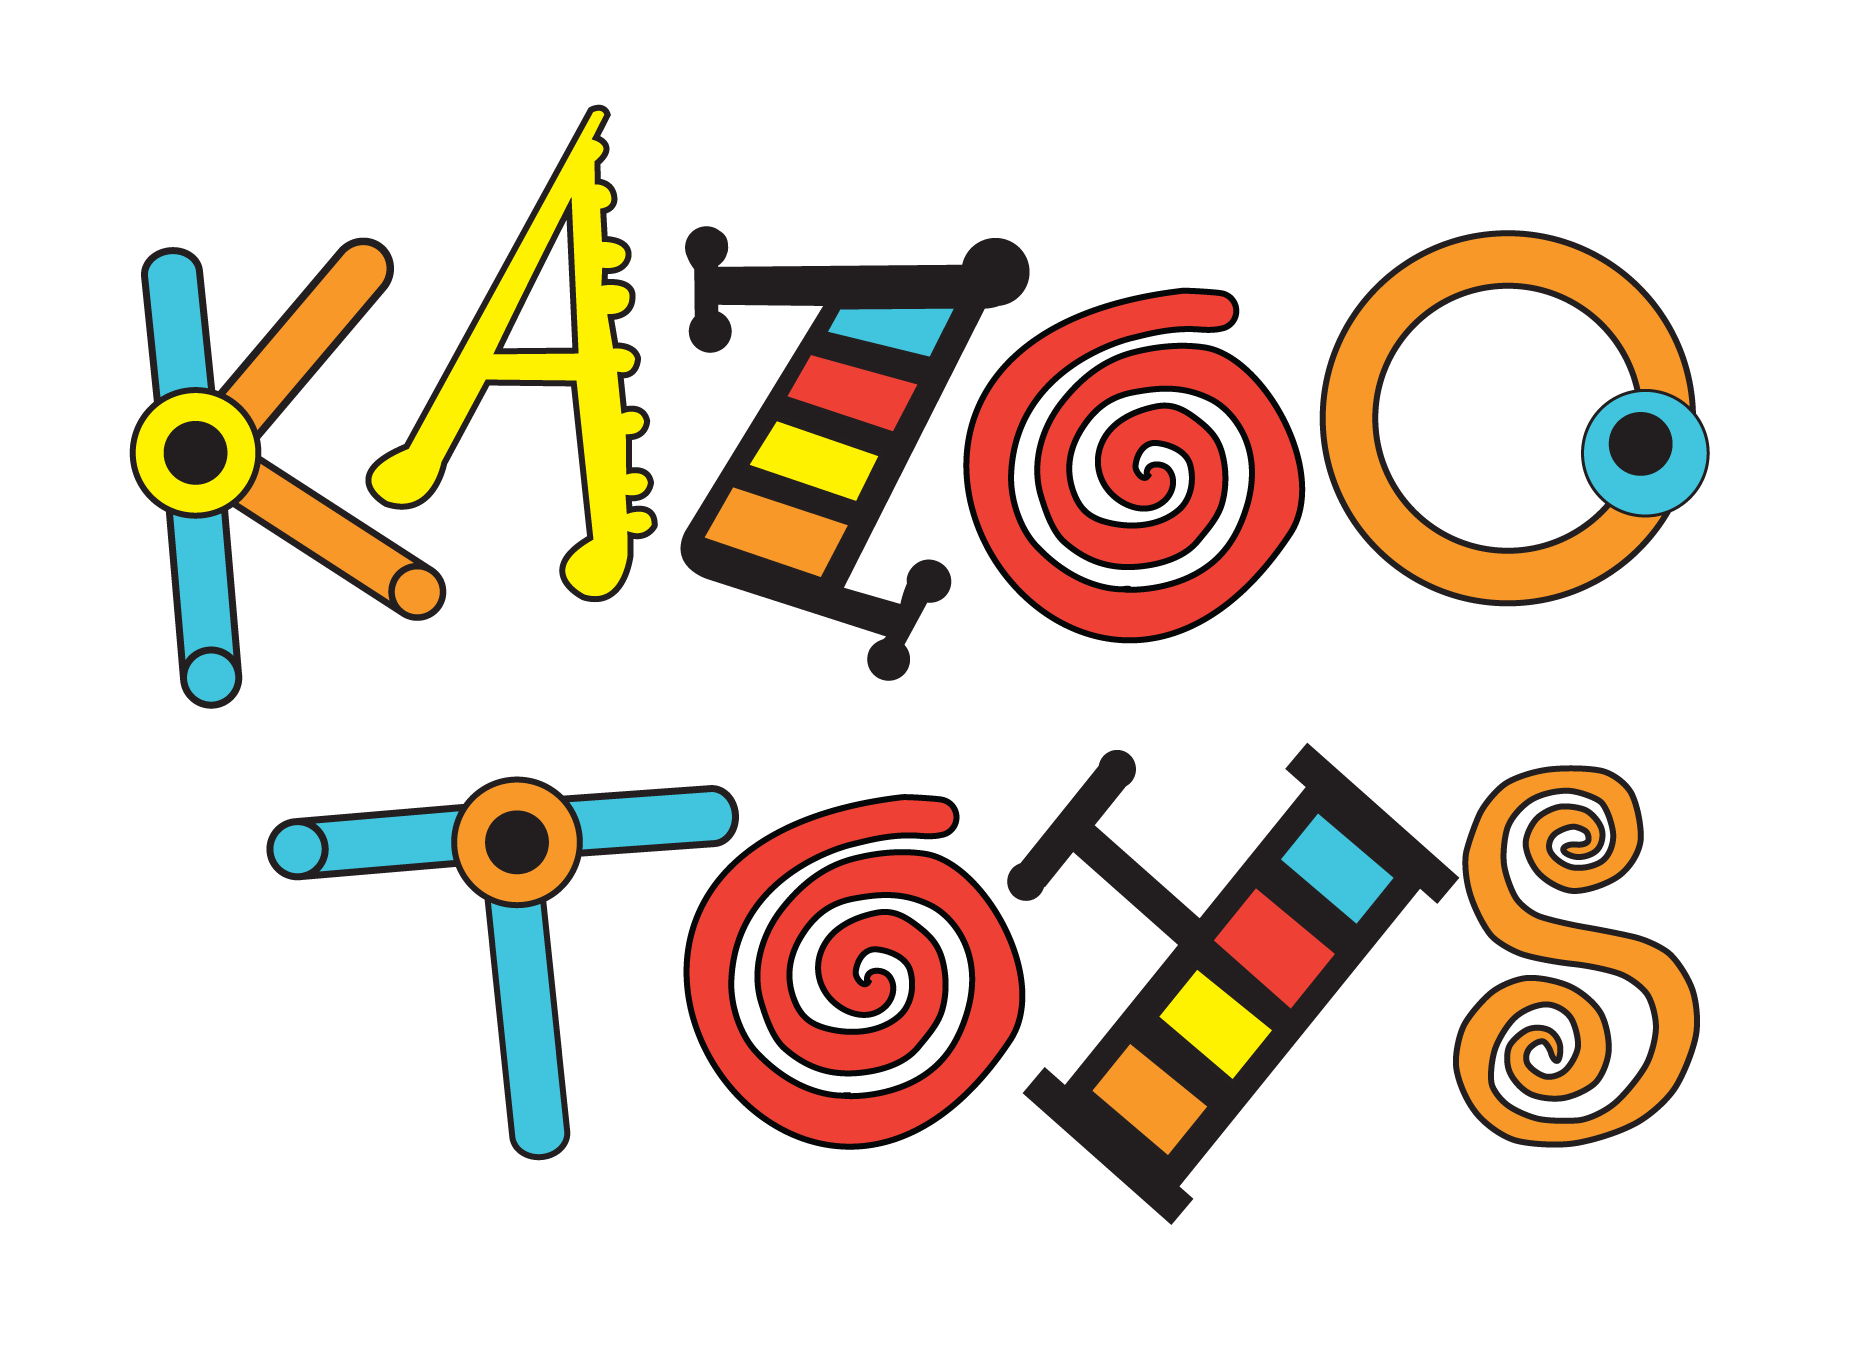 kazoo-toys-logostacked.png